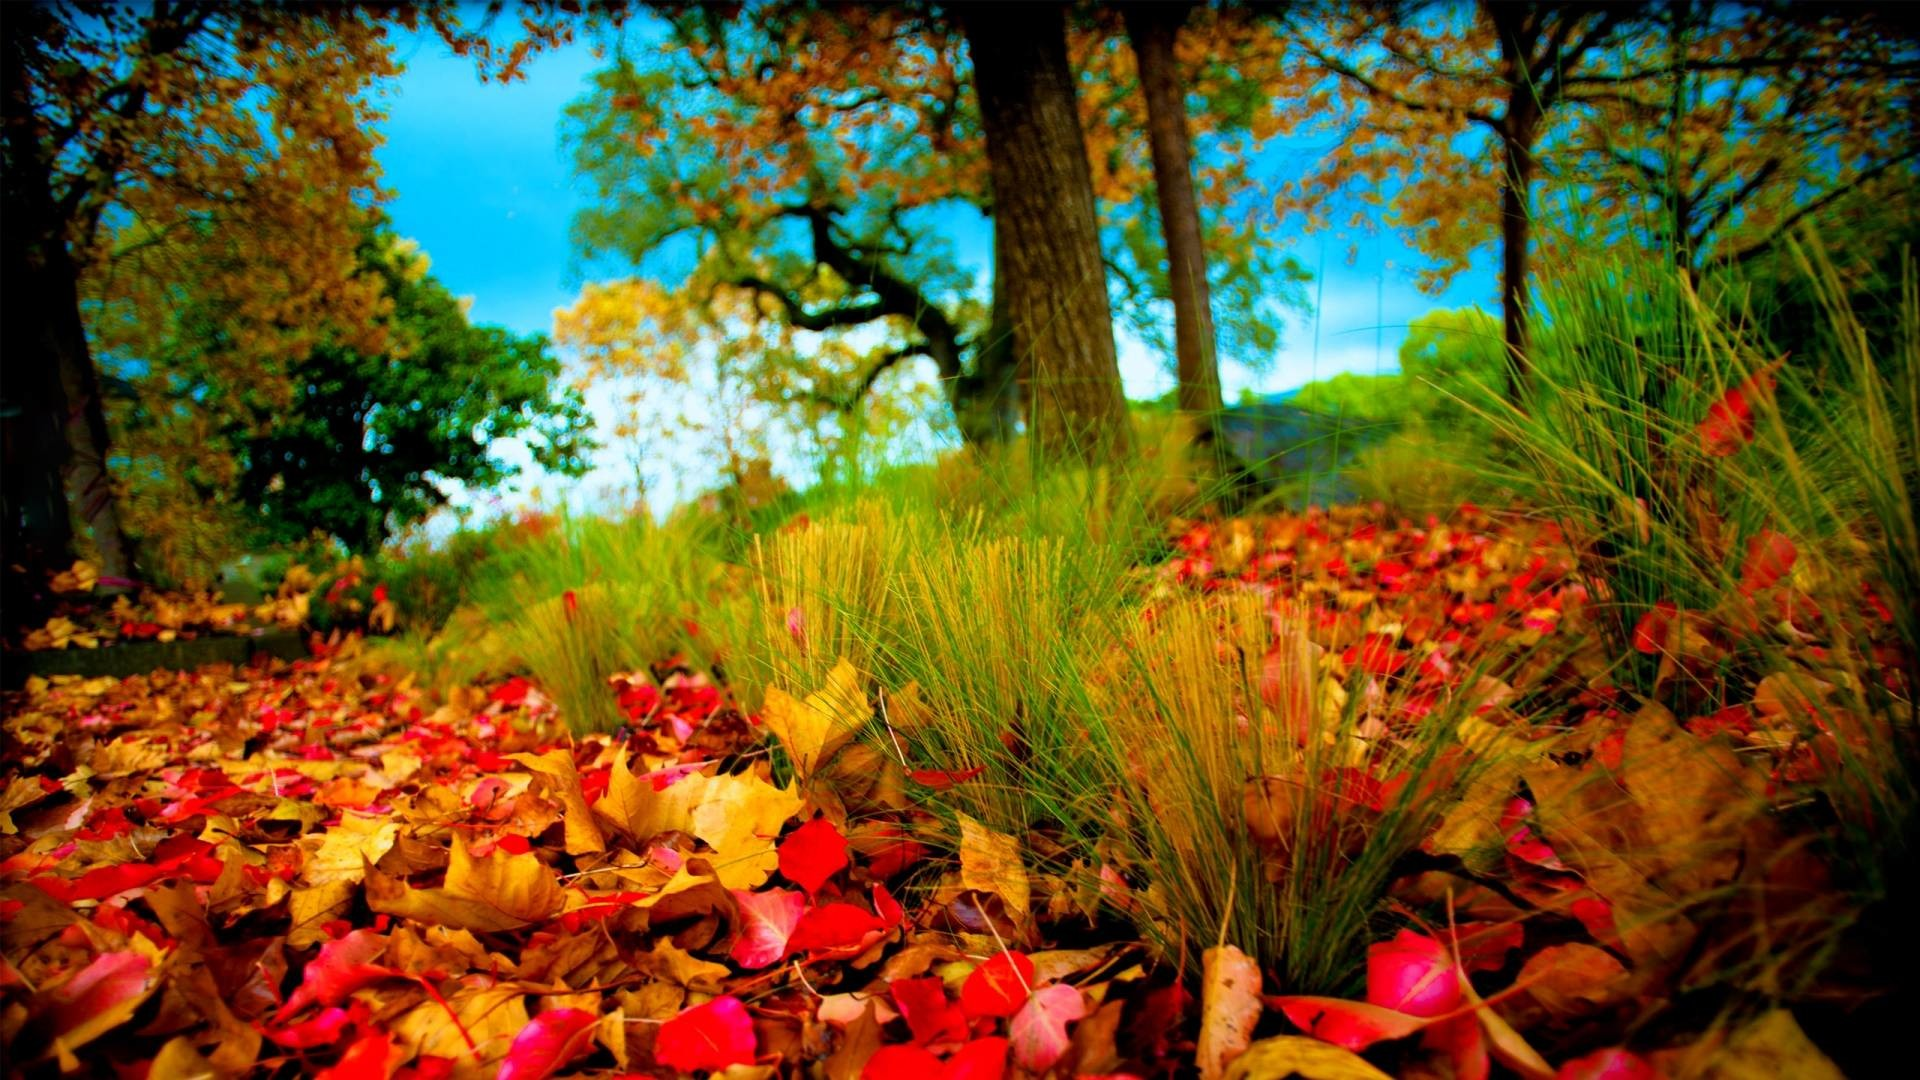 3D HD Nature Images Free Download.